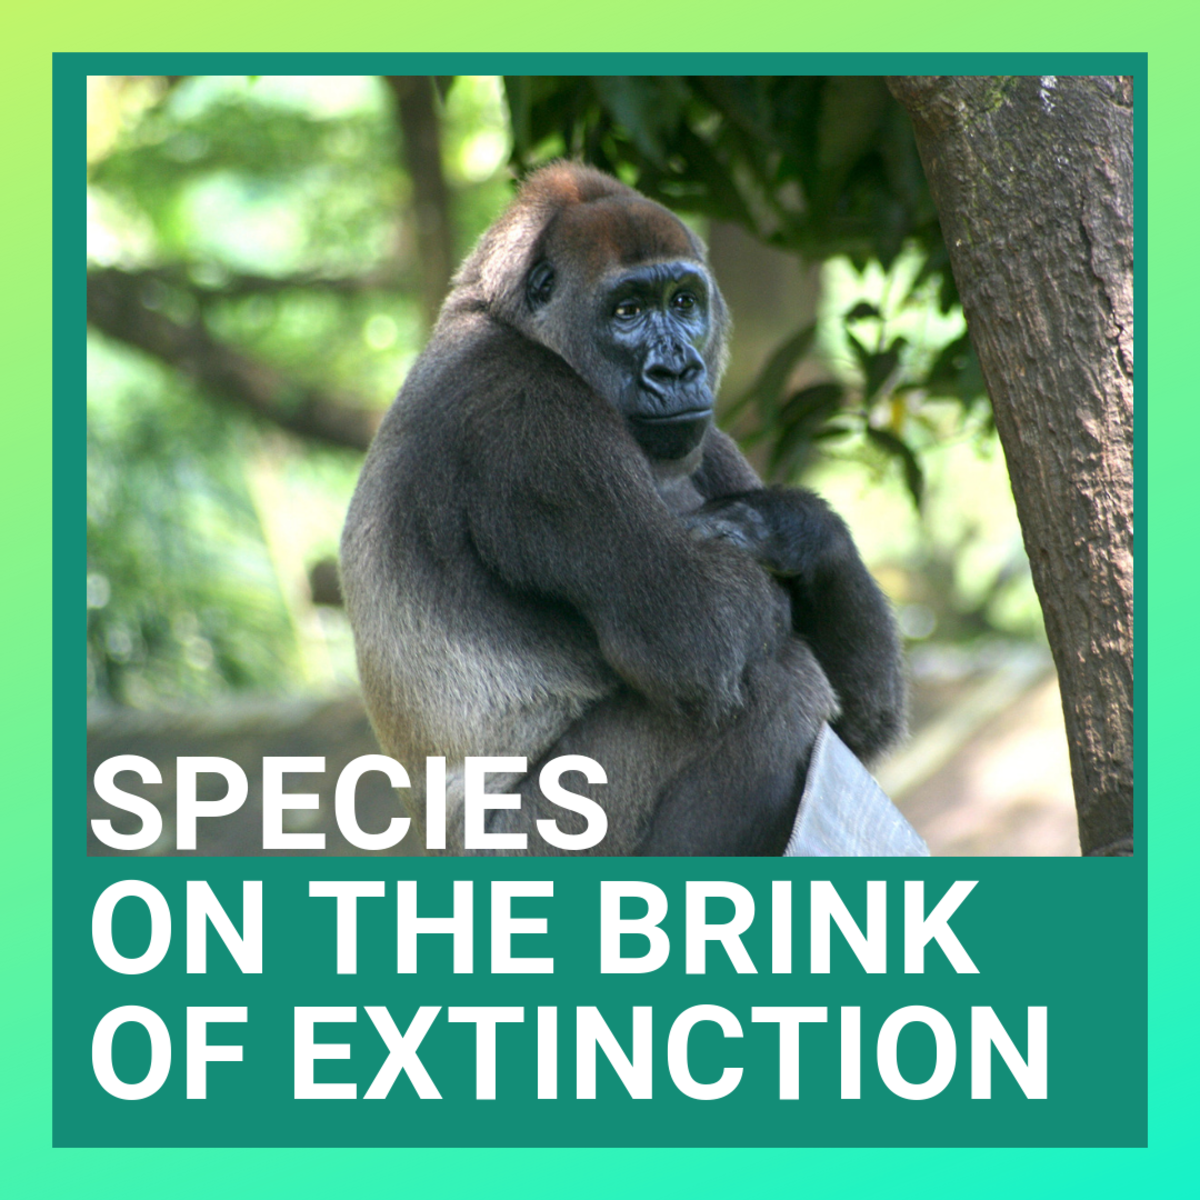 Species on the brink of extinction—the Cross River gorilla